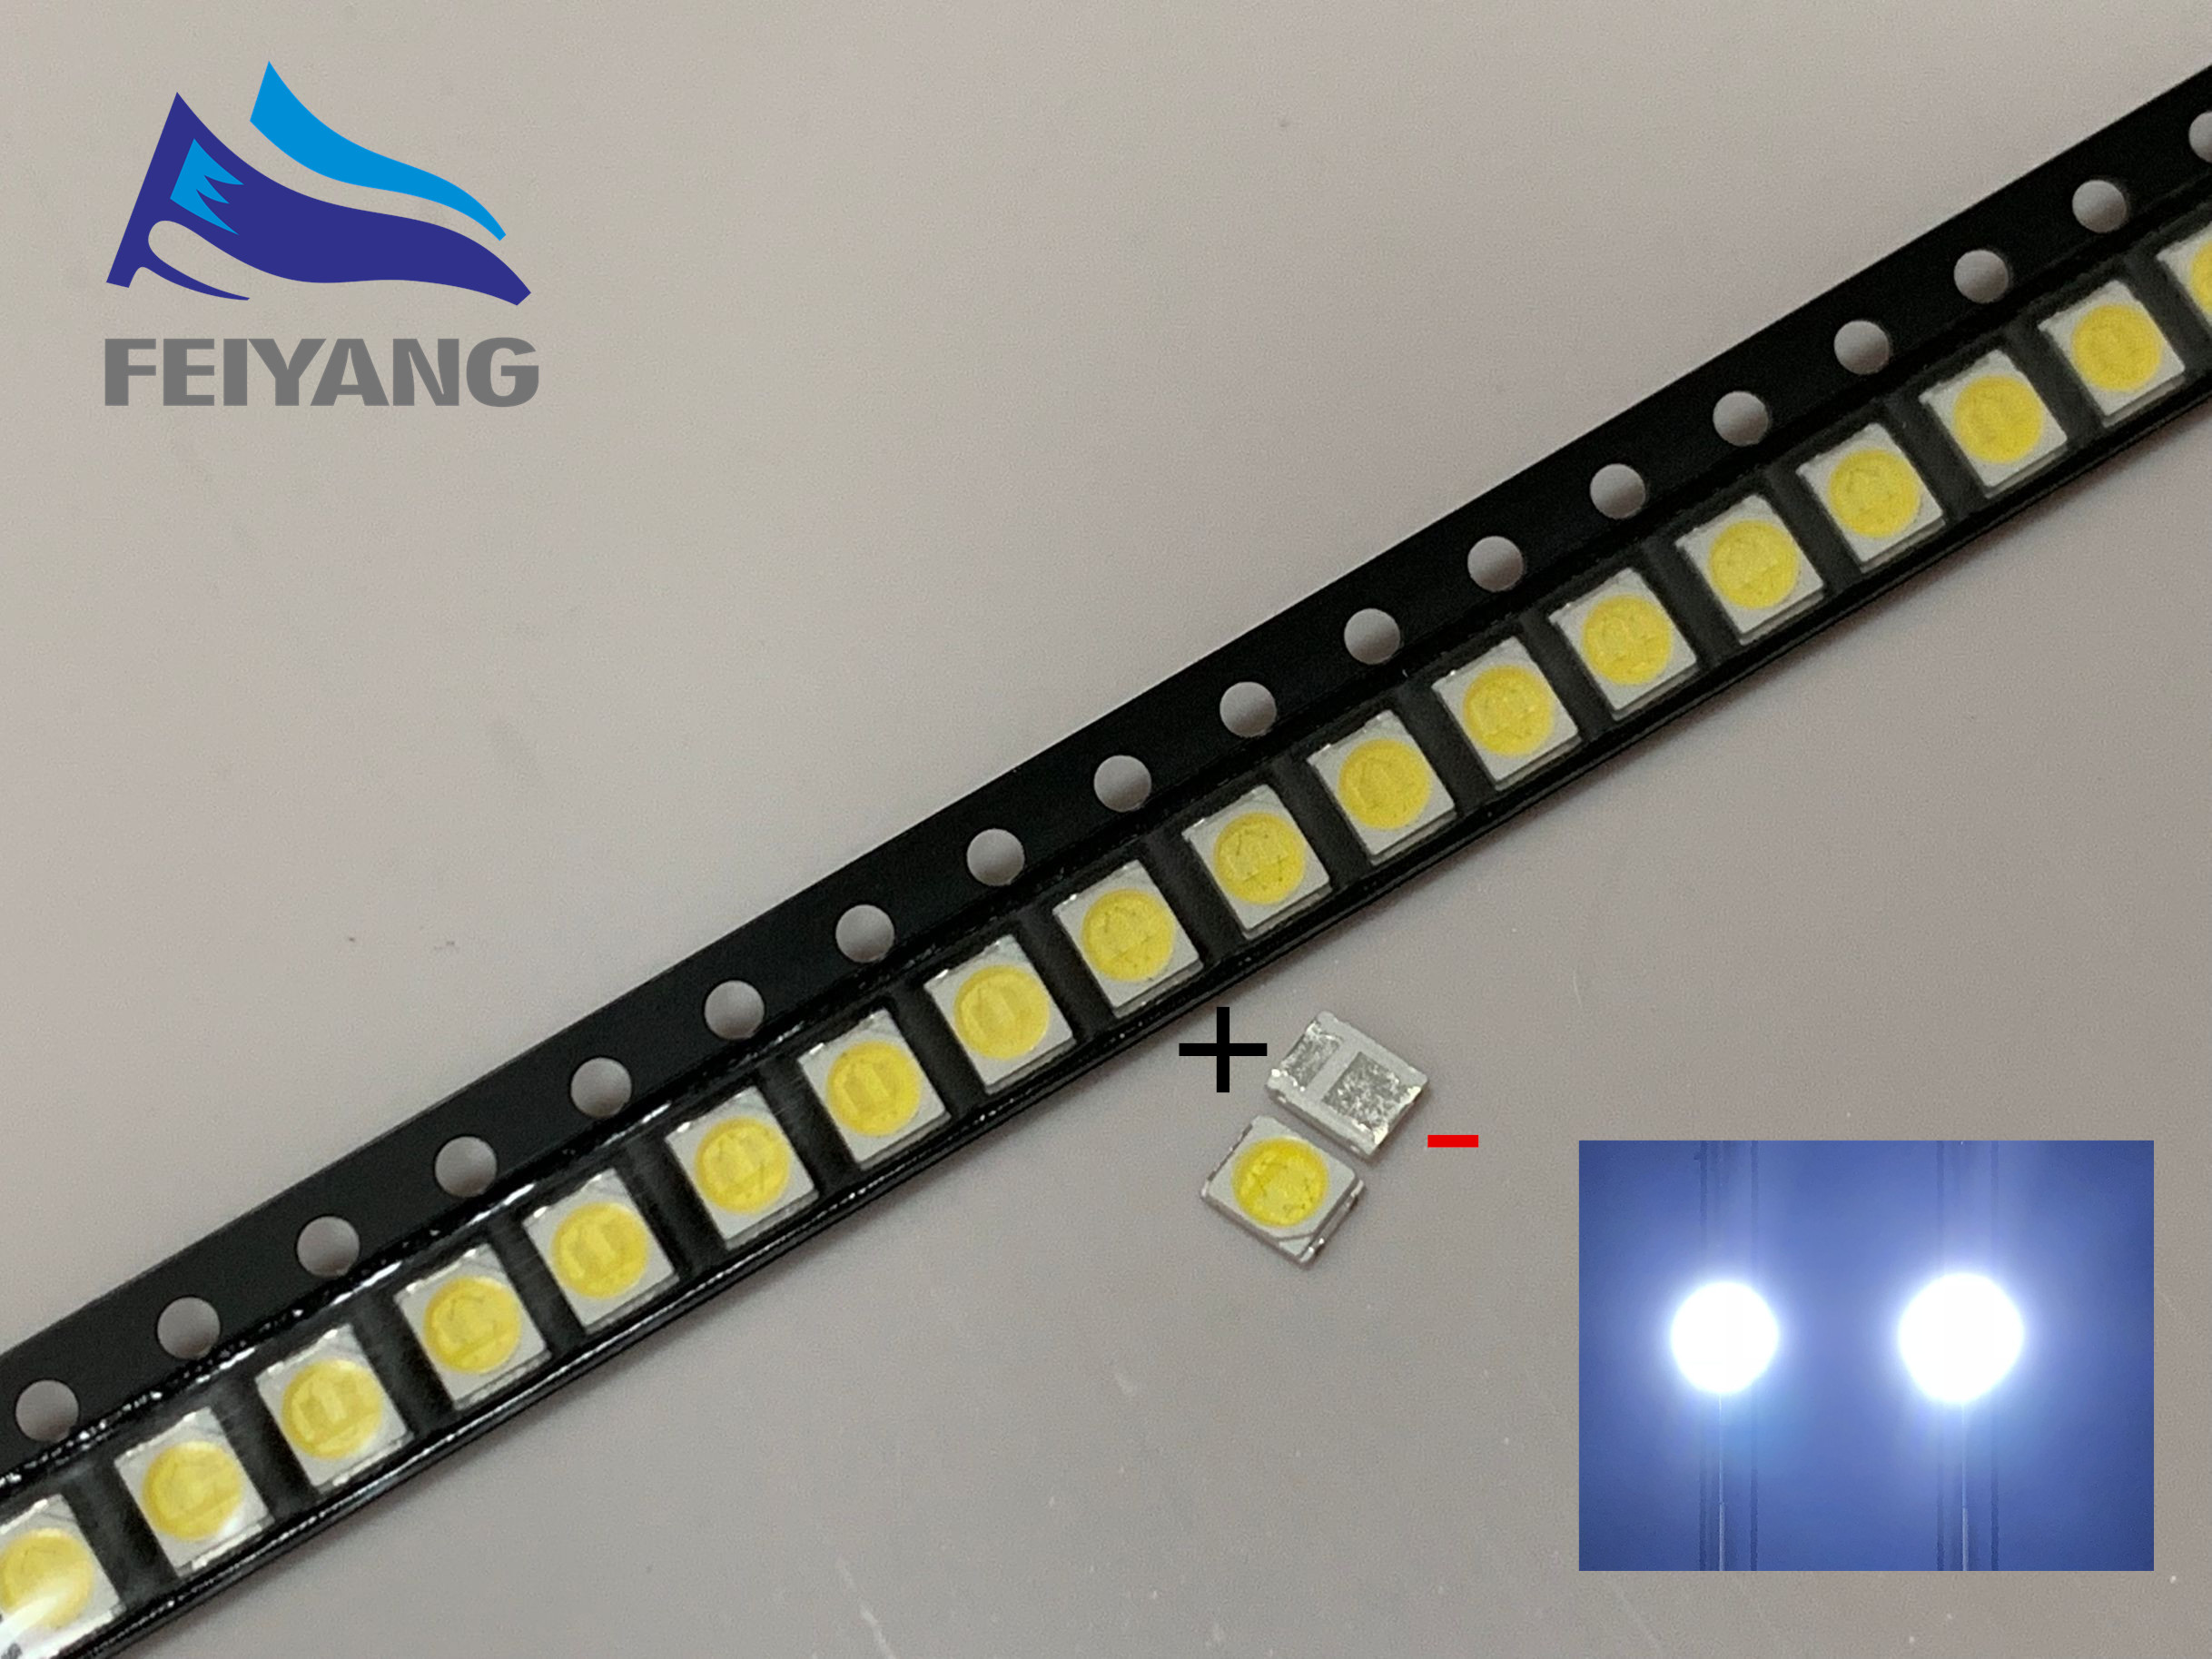 MAX-LED NANO Premium Strip 2835 SMD 300 LED 10W IP65 Cold White Professional